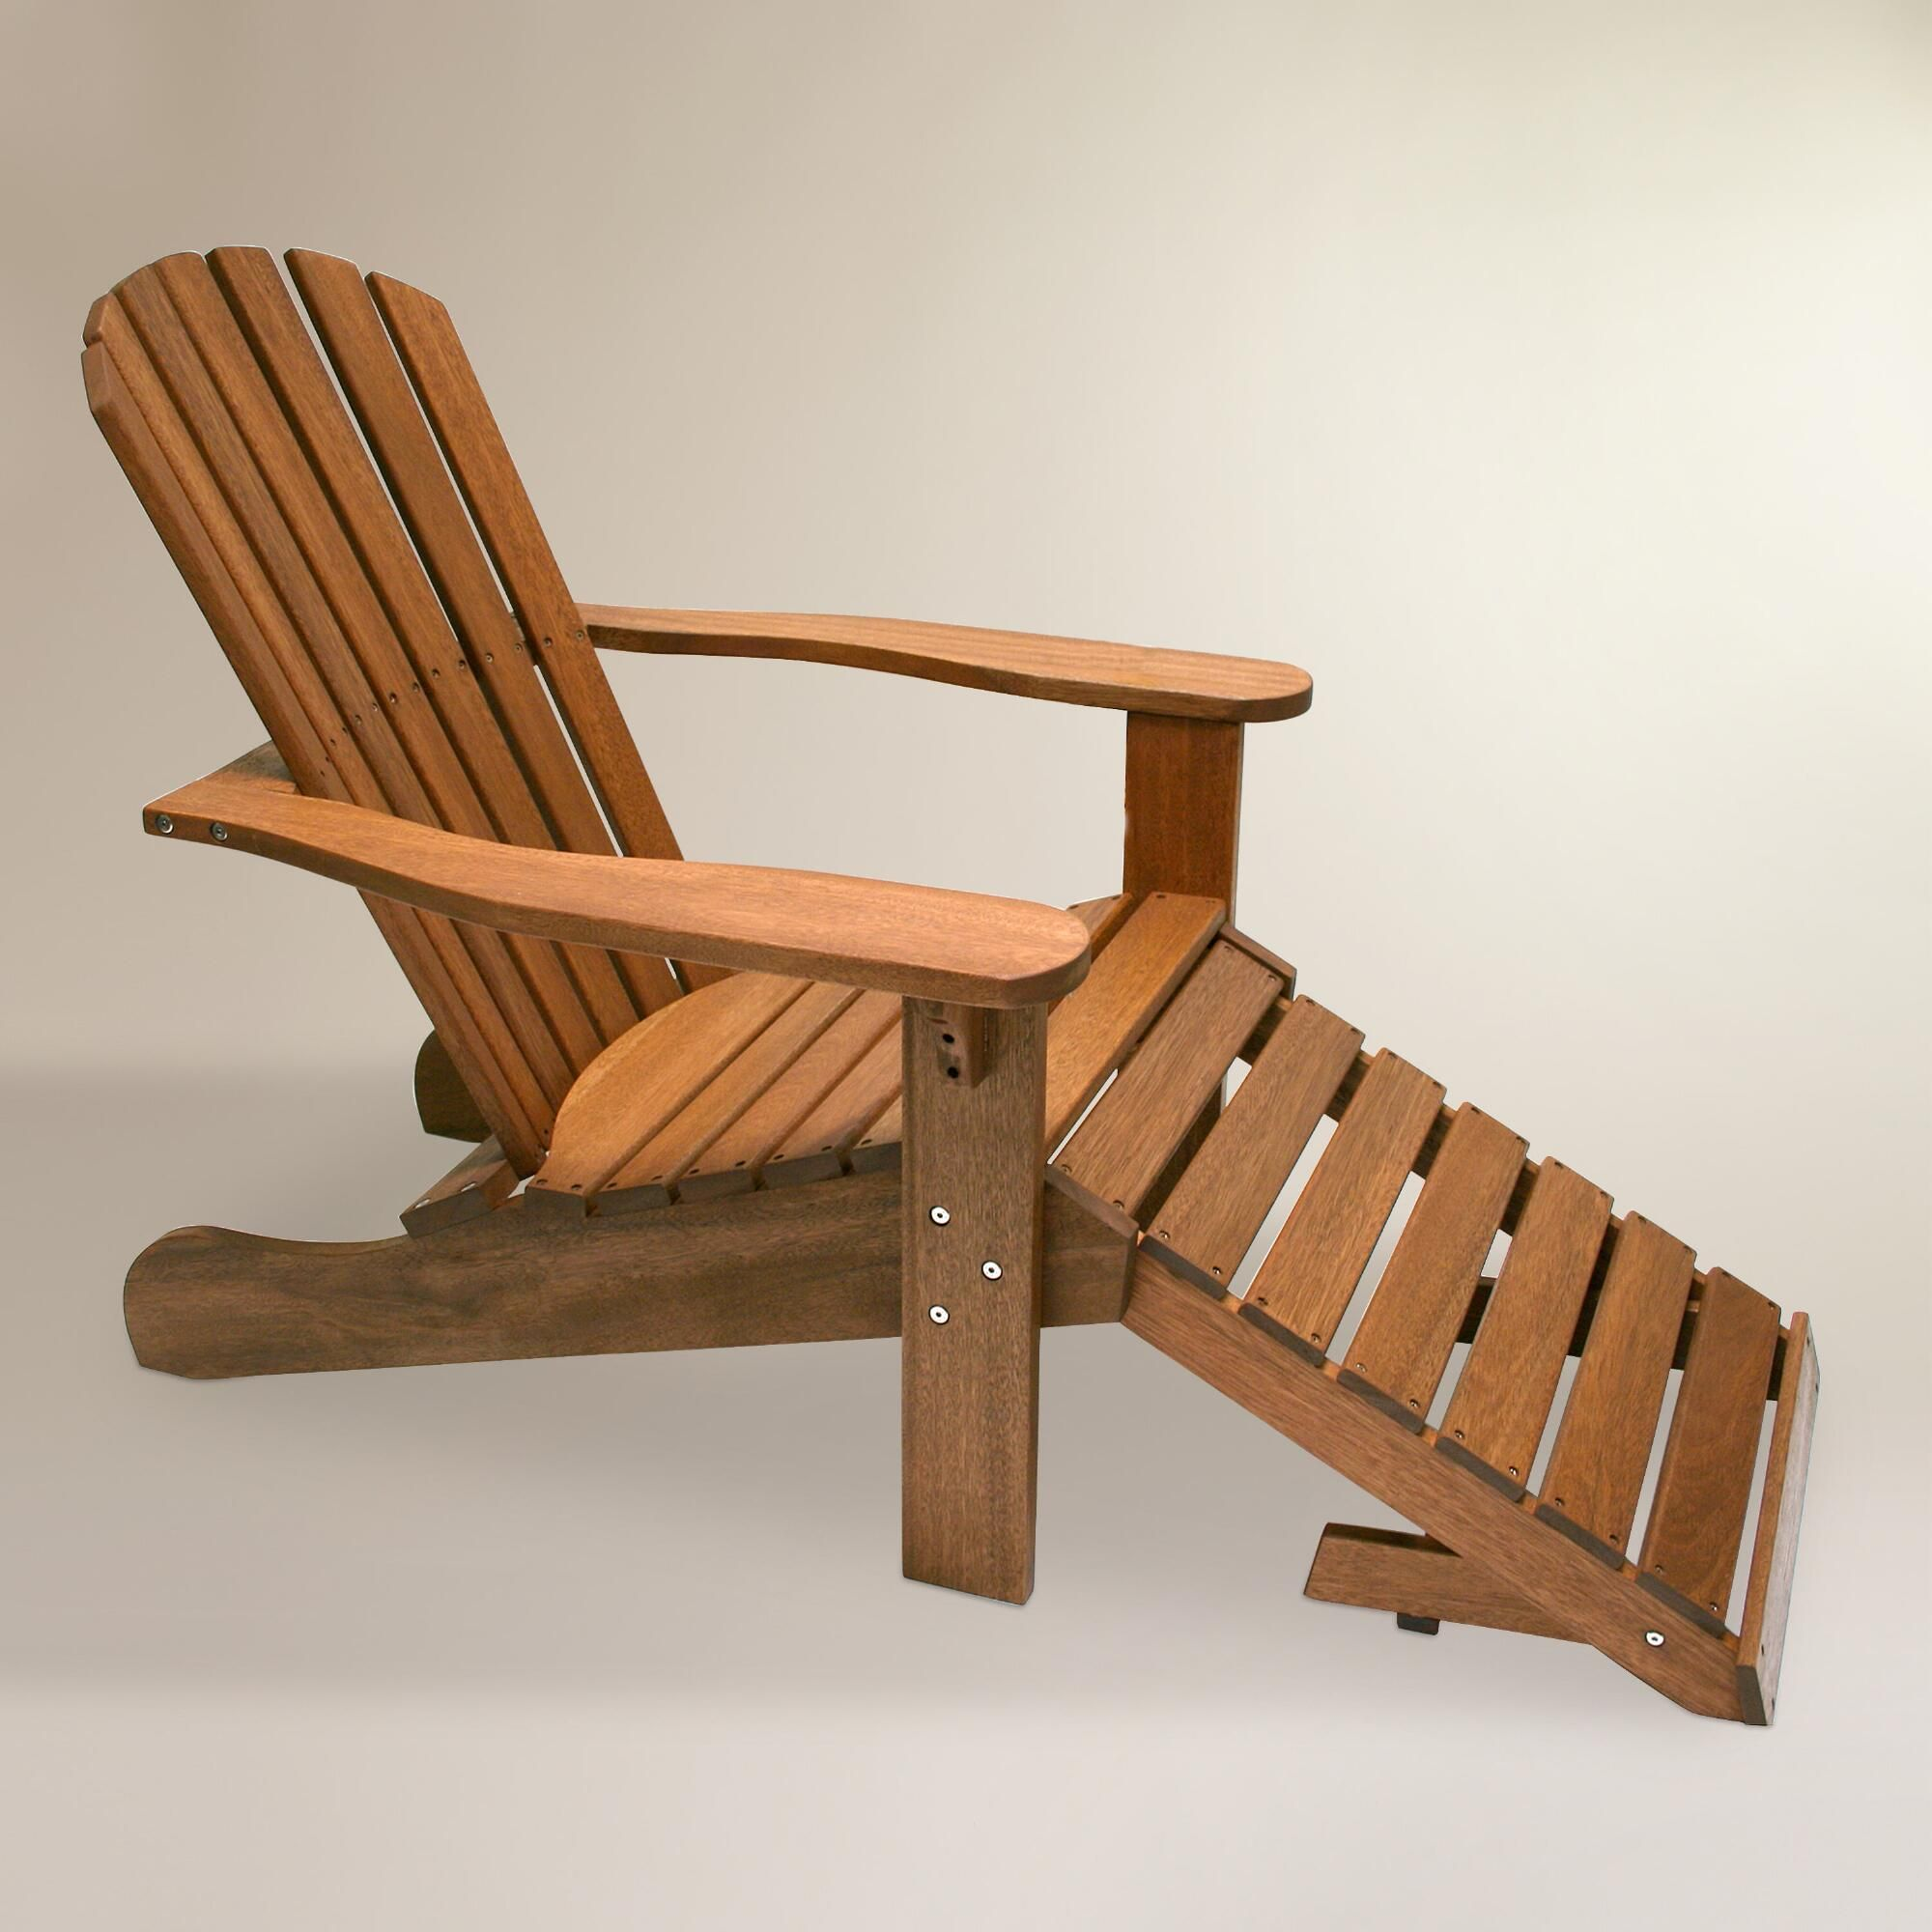 Superieur Finished In Rich Brown Umber, Our Solid Wood Adirondack Chair Features An  Inviting Extra